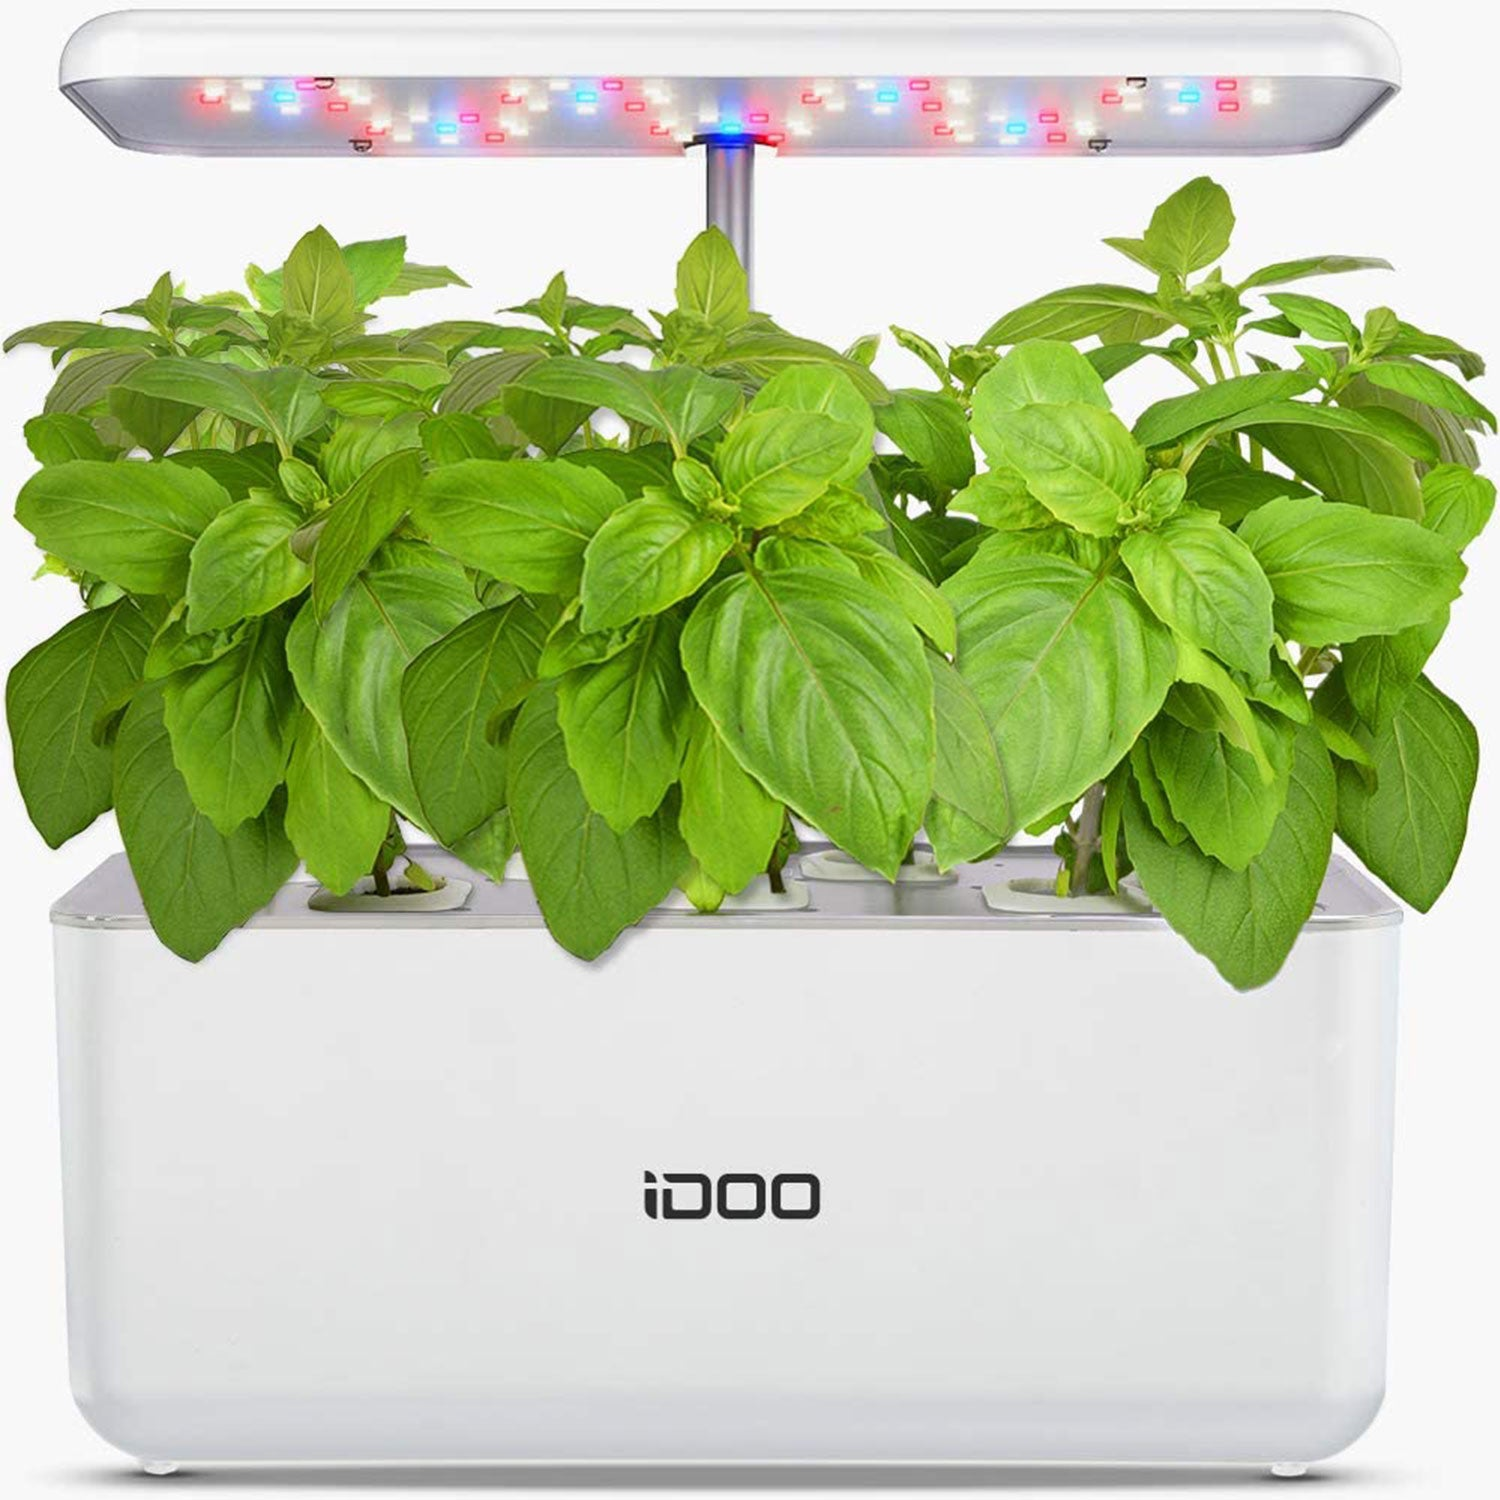 Indoor Herb Garden Starter Kit with LED Grow Light Smart Garden Planter for Home Kitchen Red iDOO Hydroponics Growing System Automatic Timer Germination Kit